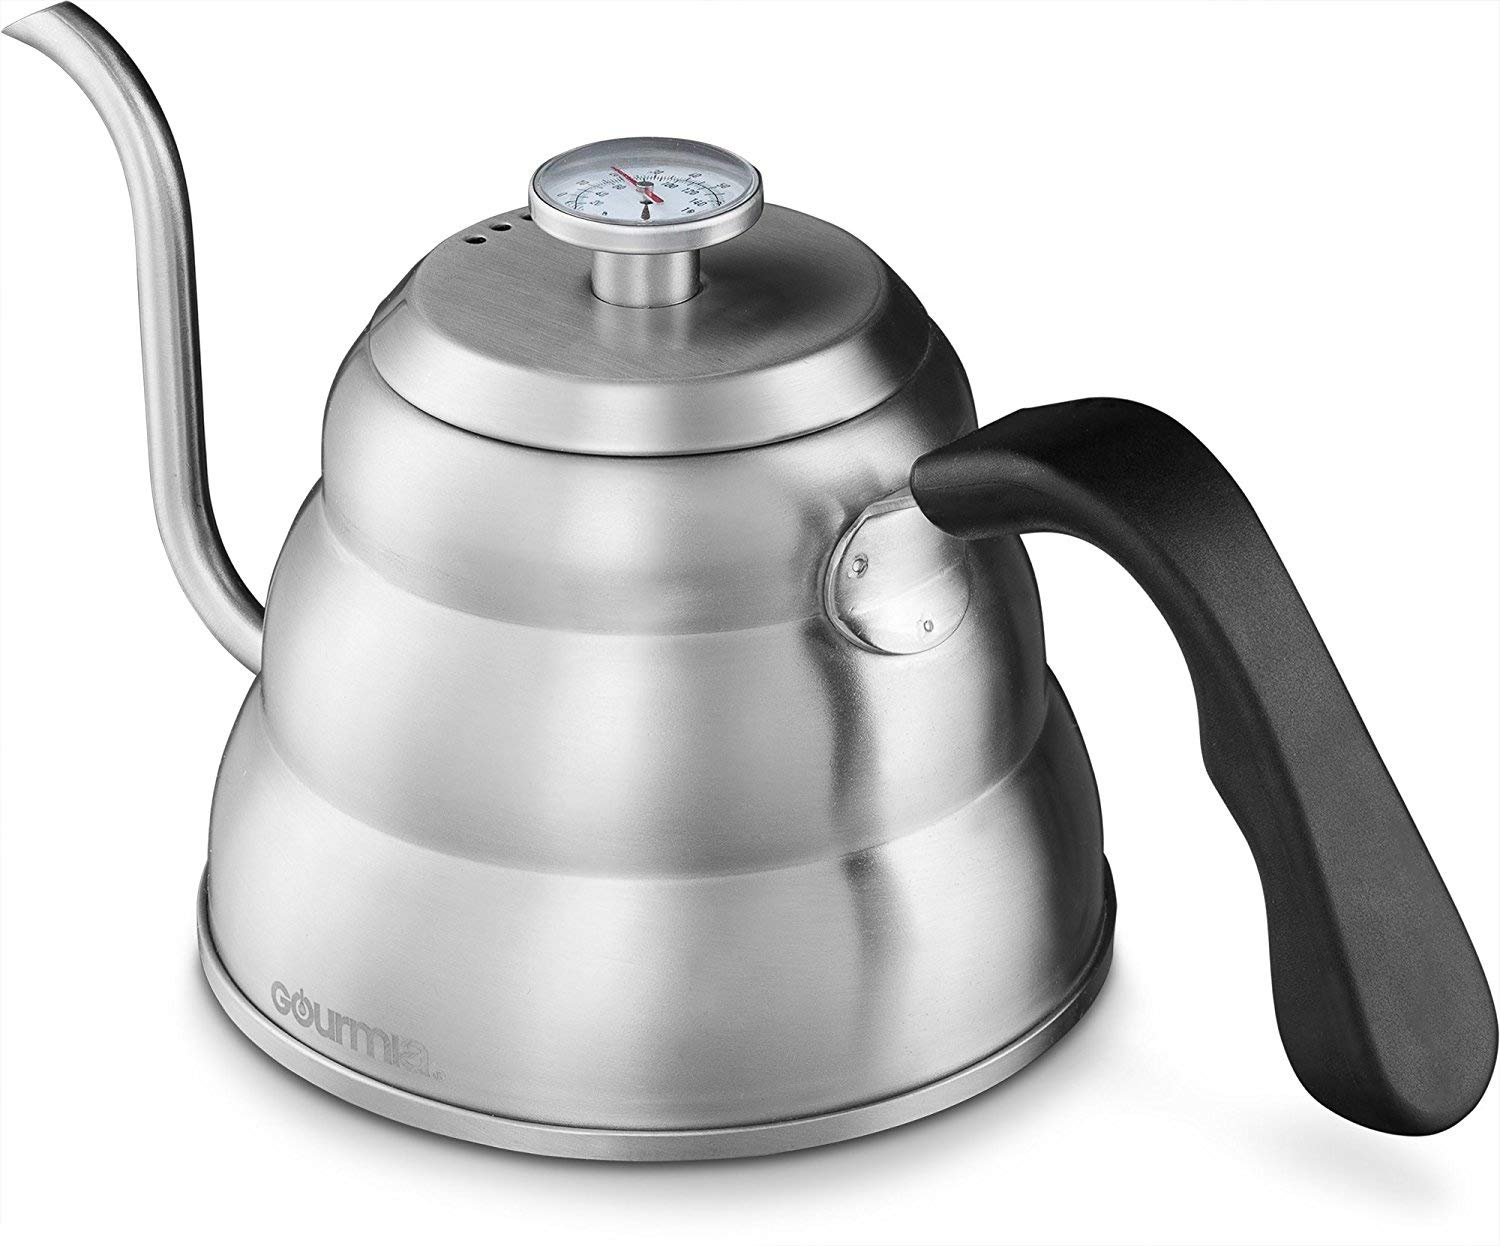 Gourmia GCK9975 Pour Over Coffee Kettle with Built In Thermometer For Perfect Temperature and Gooseneck Spout - Stainless Steel Stovetop Tea Pot - Induction Stove and Fire Safe - 1 Liter